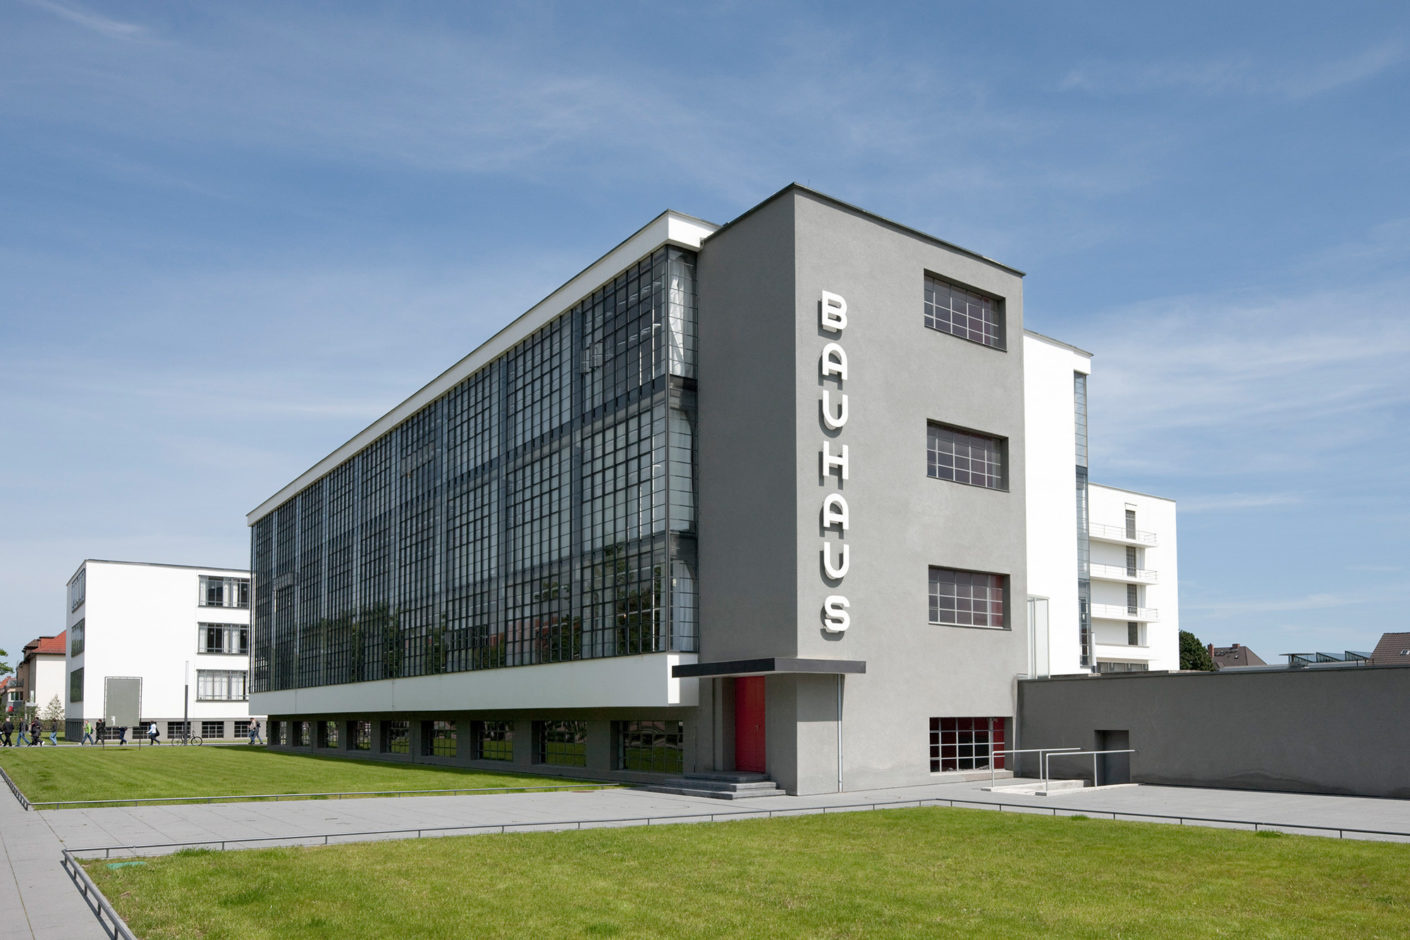 Bauhaus Dessau A Visit On The Occasion Of The Anniversary Year